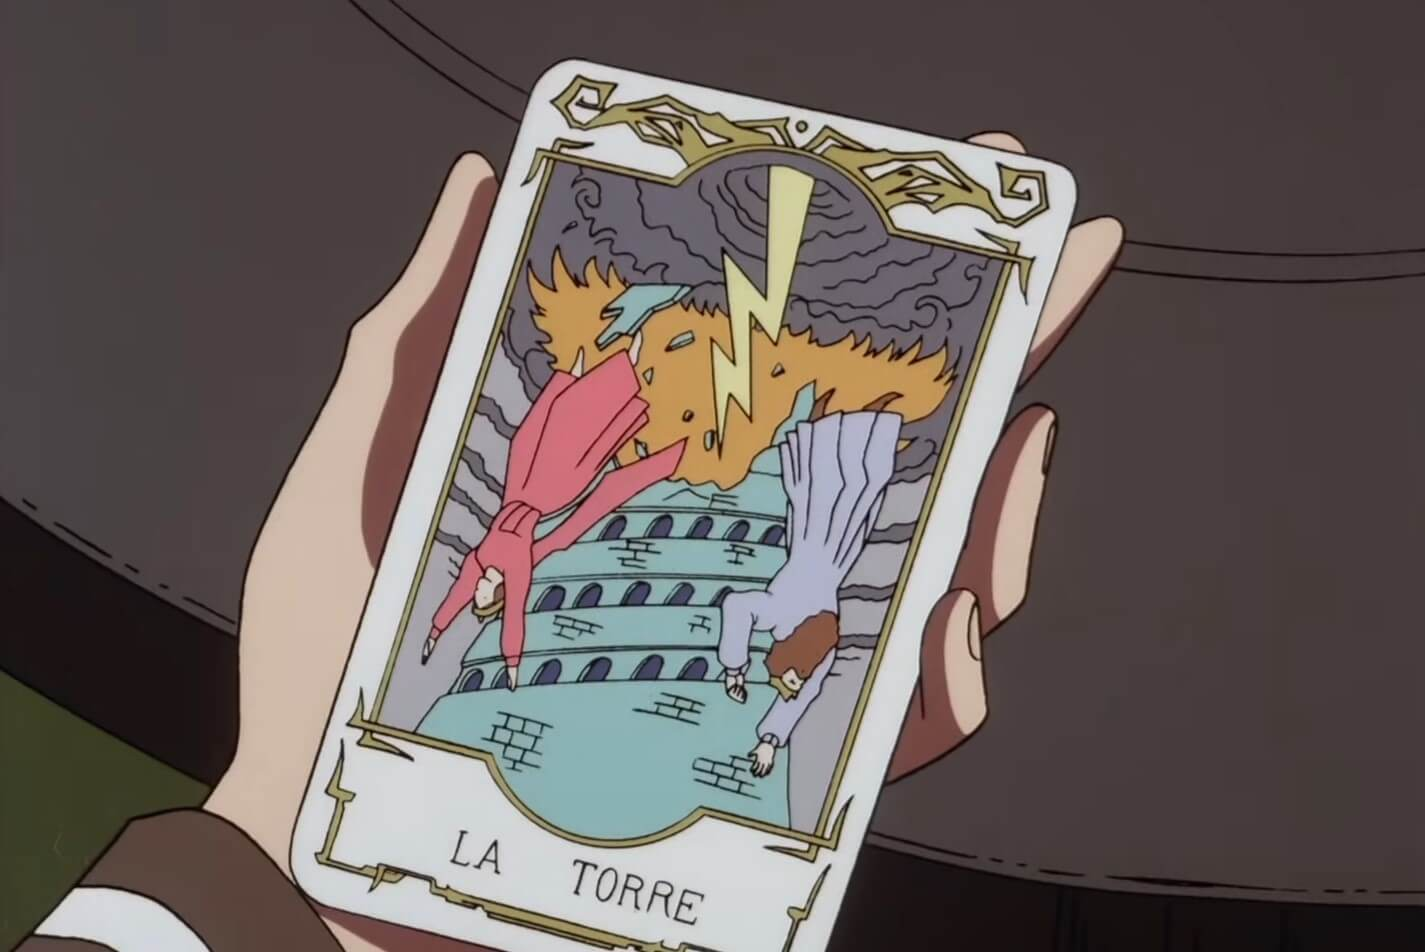 escaflowne la torre tower tarot card